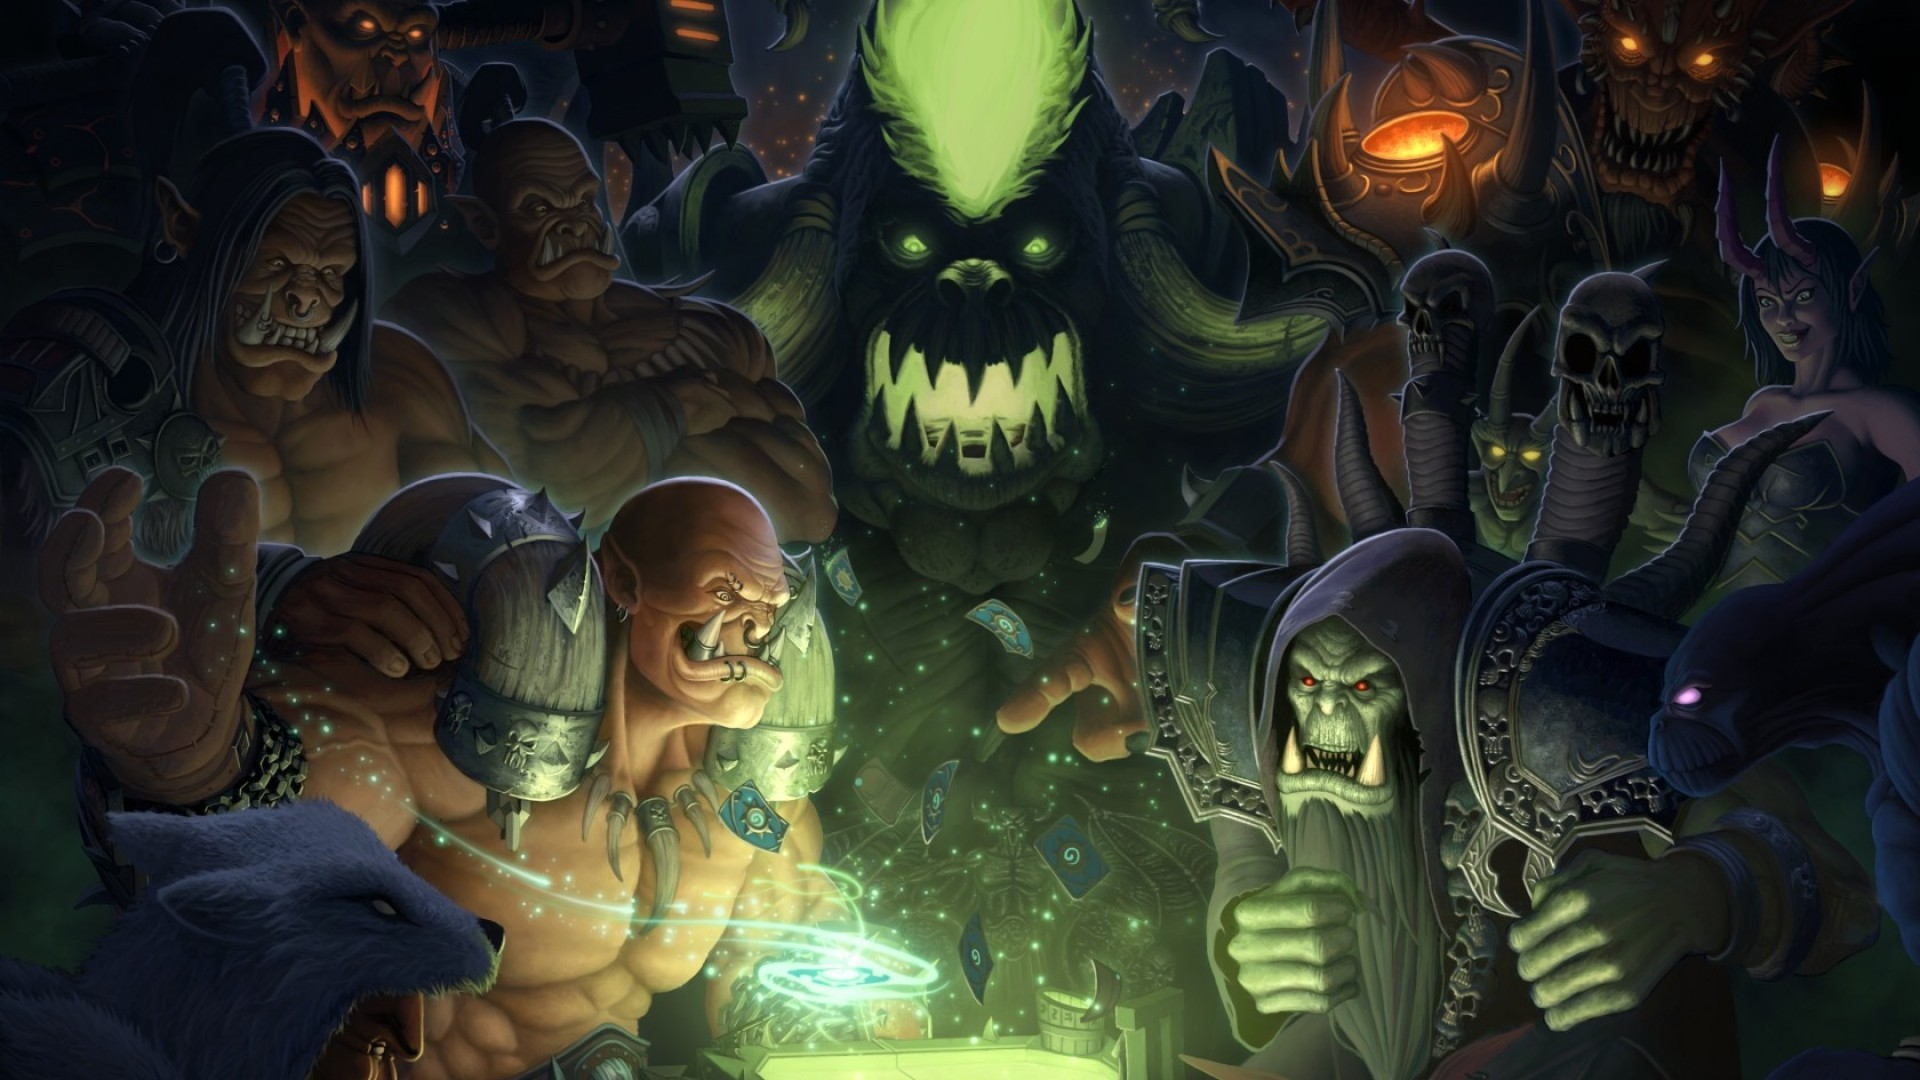 Wallpaper hearthstone, warlords of draenor, wow, maps, orcs,  world of